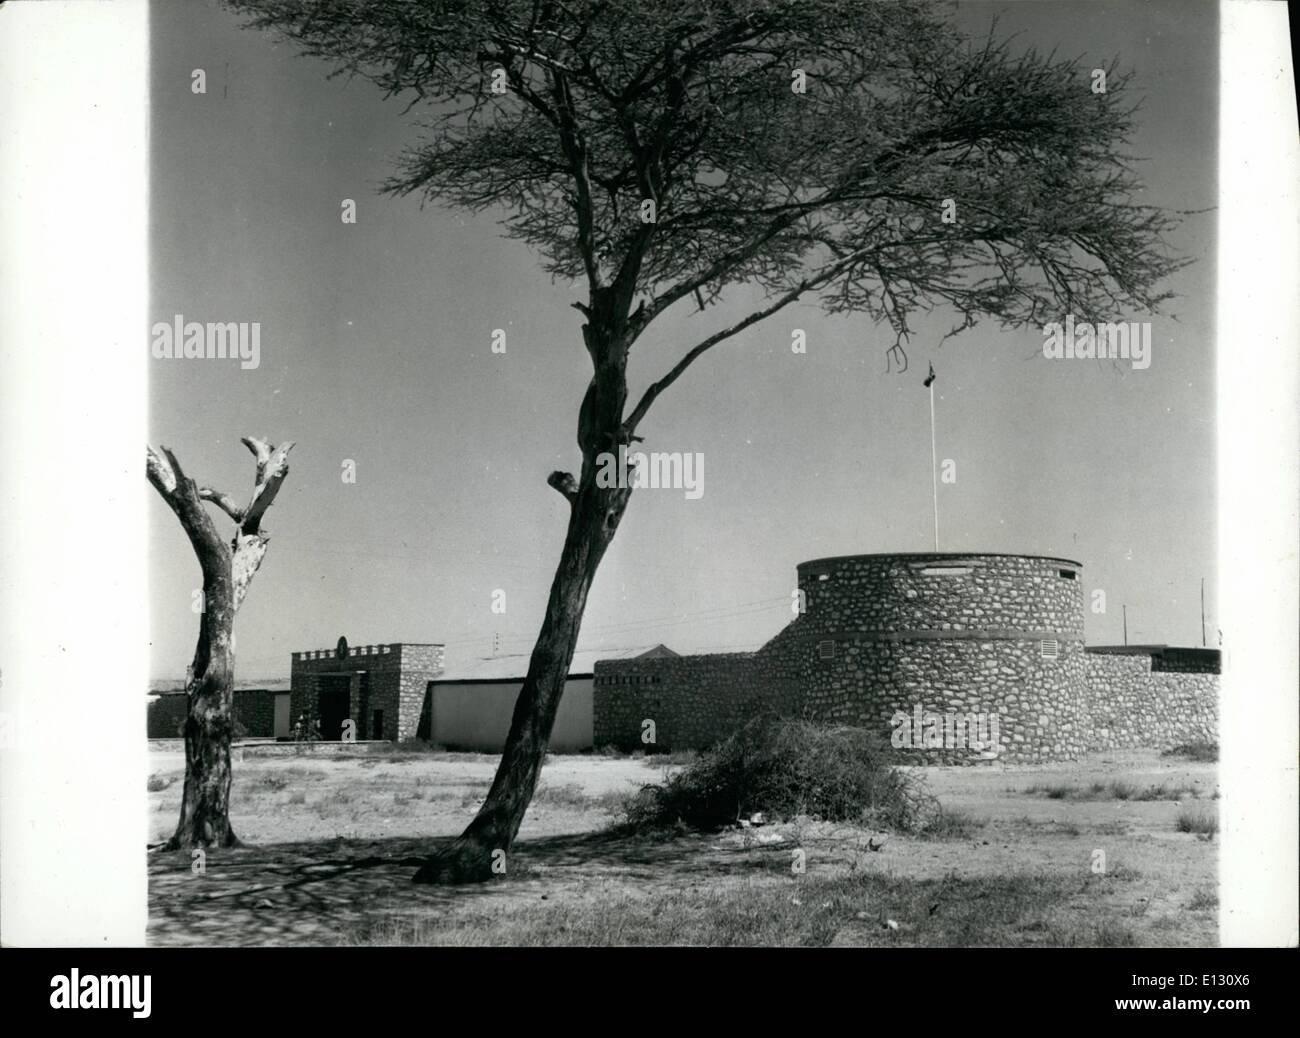 Feb. 26, 2012 - The Somalian Scouts A view of the Fort which serves at the headquarters of the Somalian Scouts. In the foreground is a Thord Tree. - Stock Image